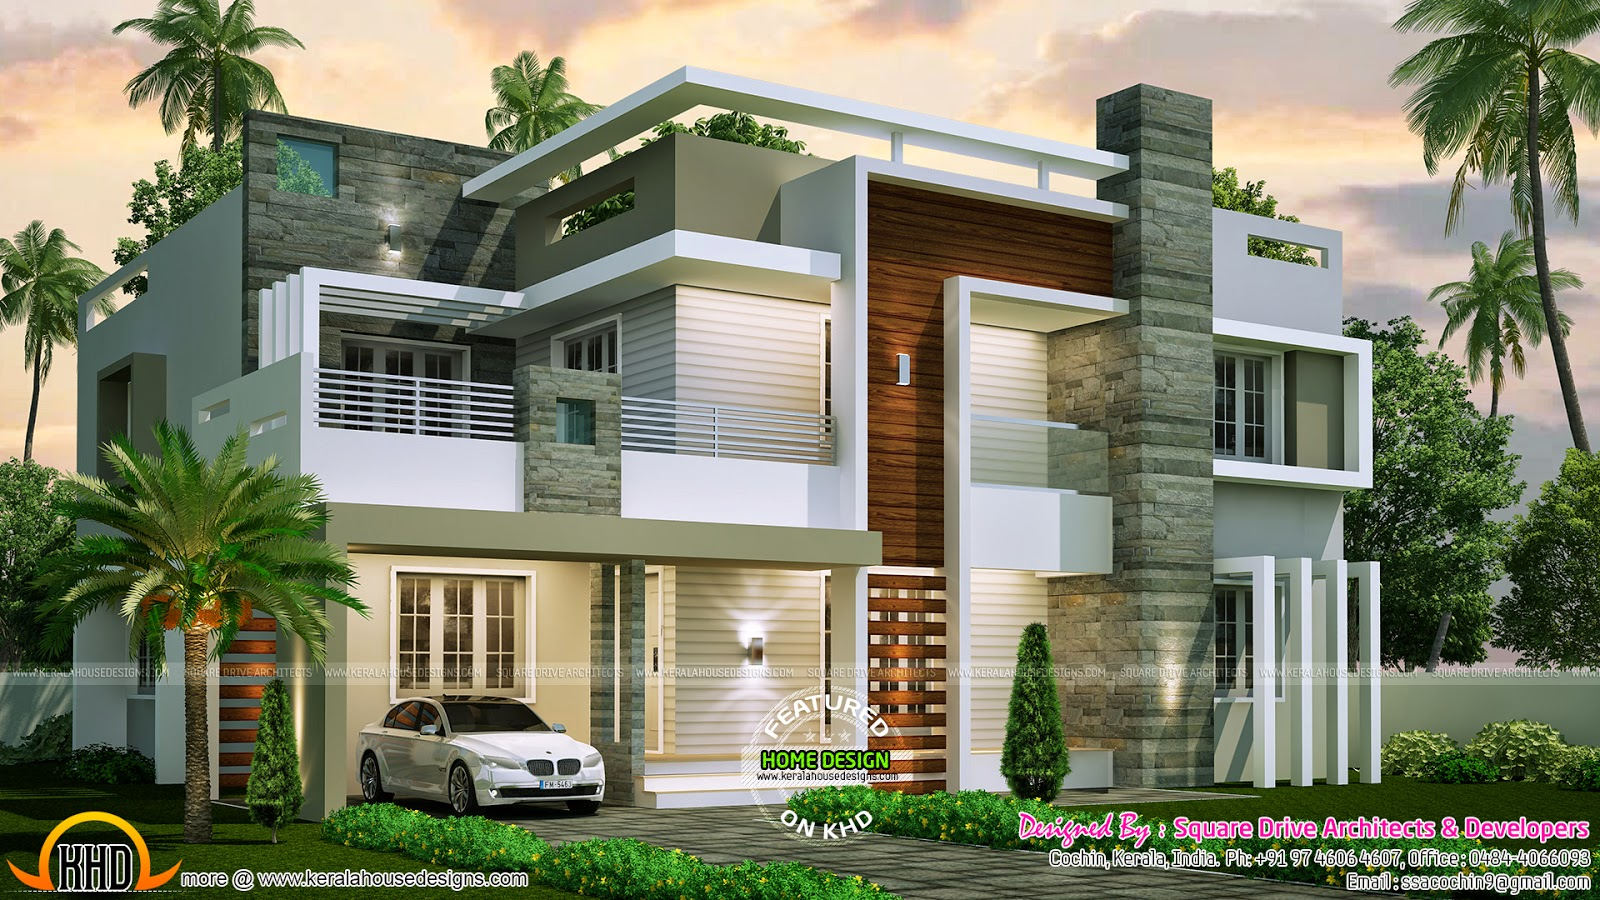 4 bedroom contemporary home design kerala home design Modern houseplans